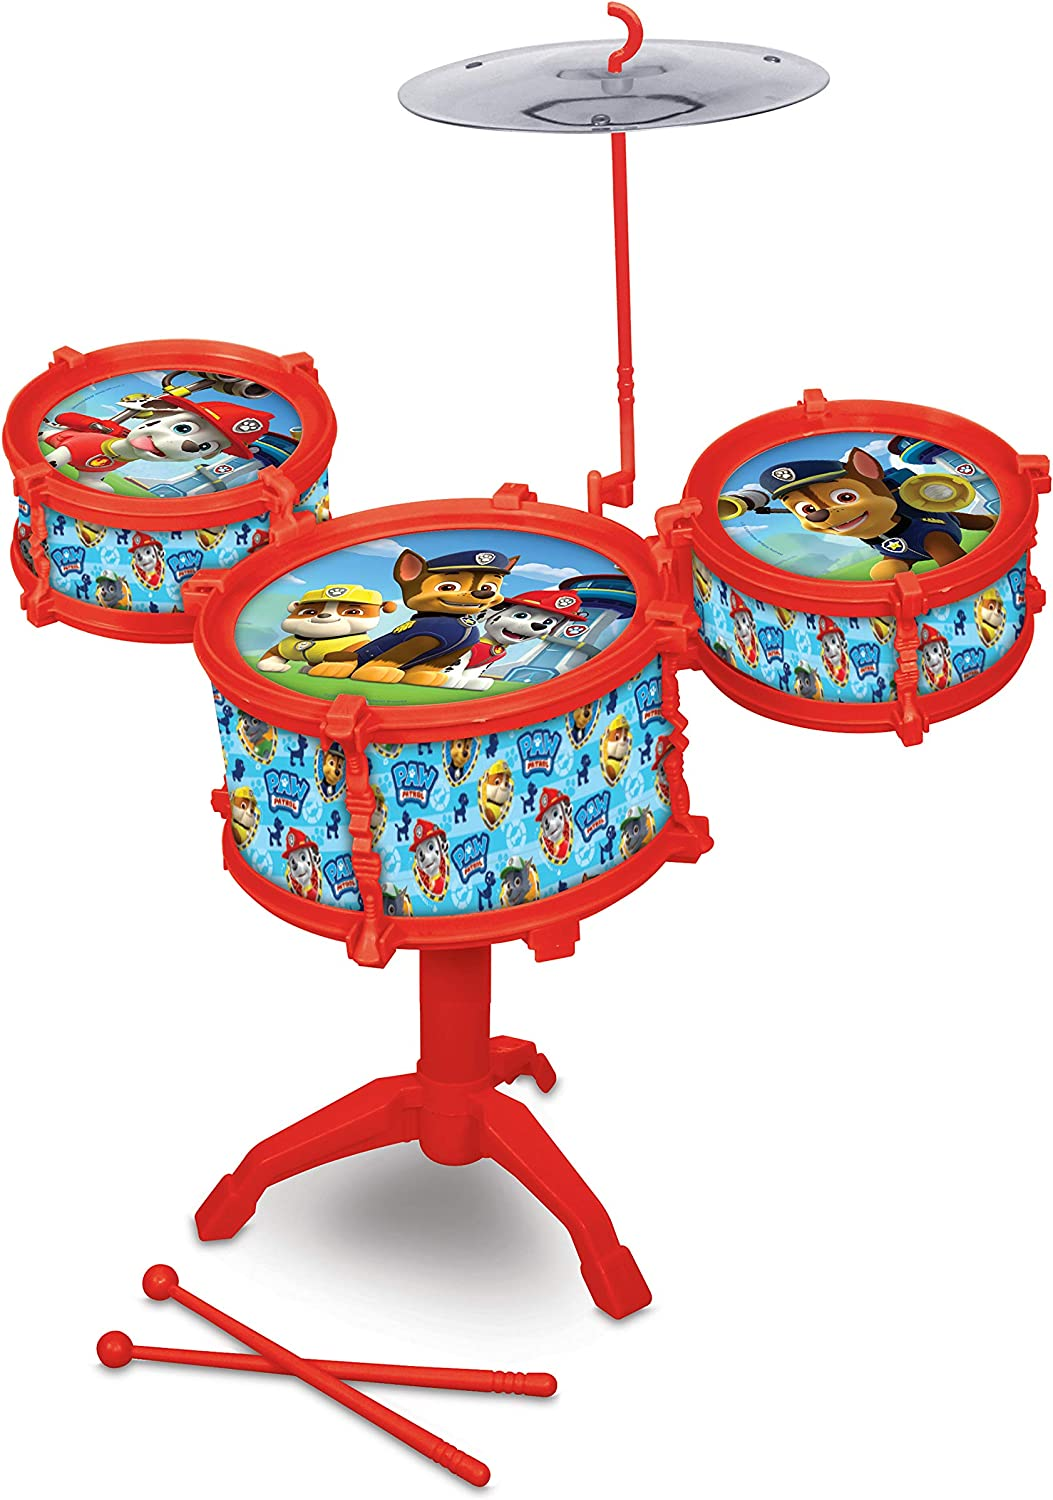 What Kids Want Paw Set Drum Max 73% OFF Patrol Kit Al sold out.